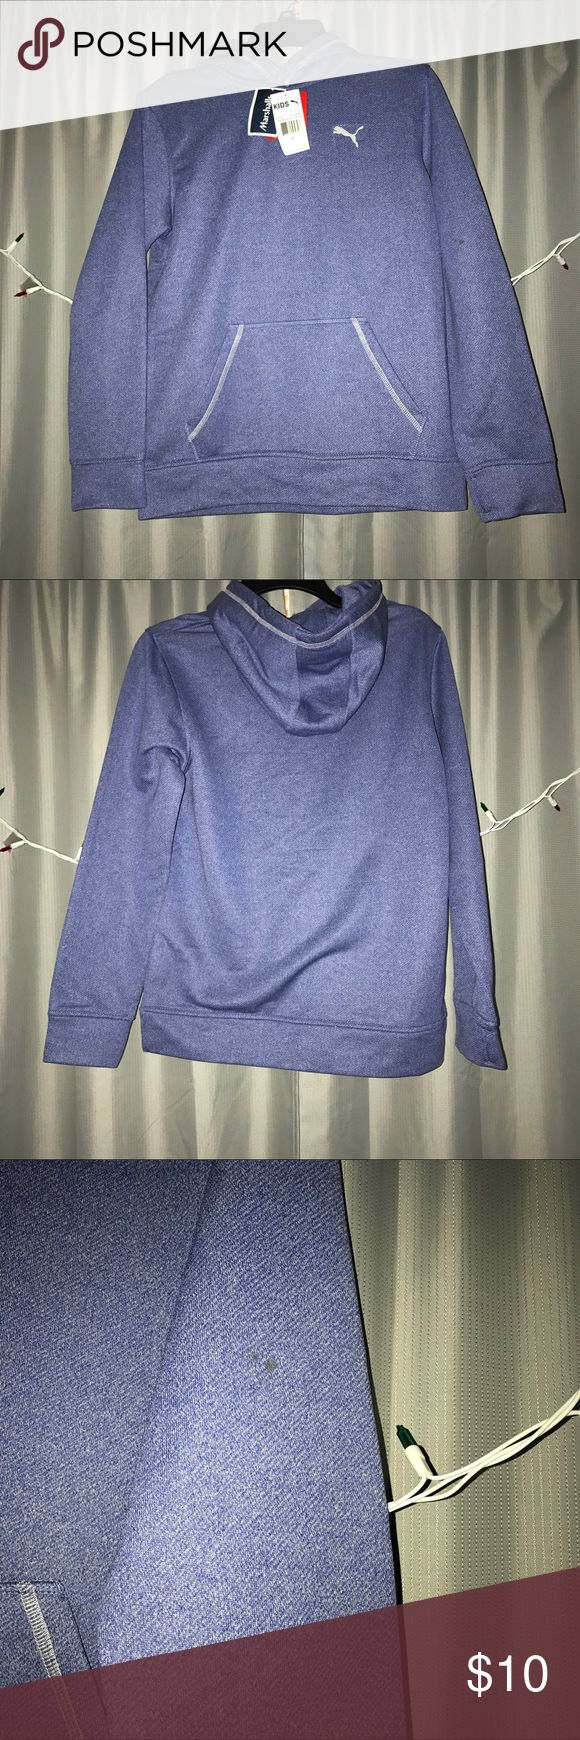 Shark blue puma sweatshirt Super comfy sweatshirt, new, bought with small stain on arm (shown in pictures), size large (kids) Puma Shirts & Tops Sweatshirts & Hoodies